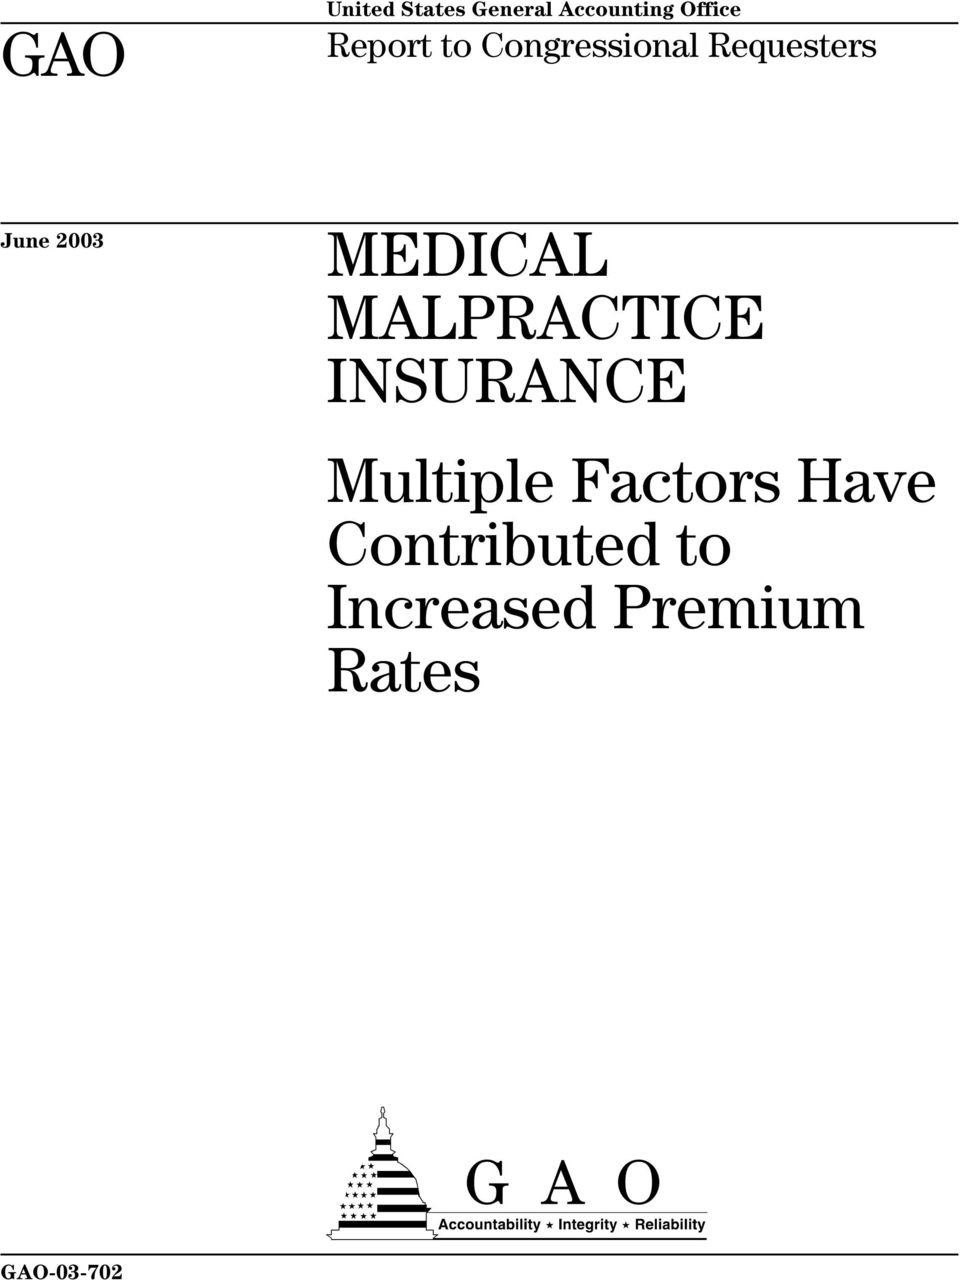 MEDICAL MALPRACTICE INSURANCE Multiple Factors